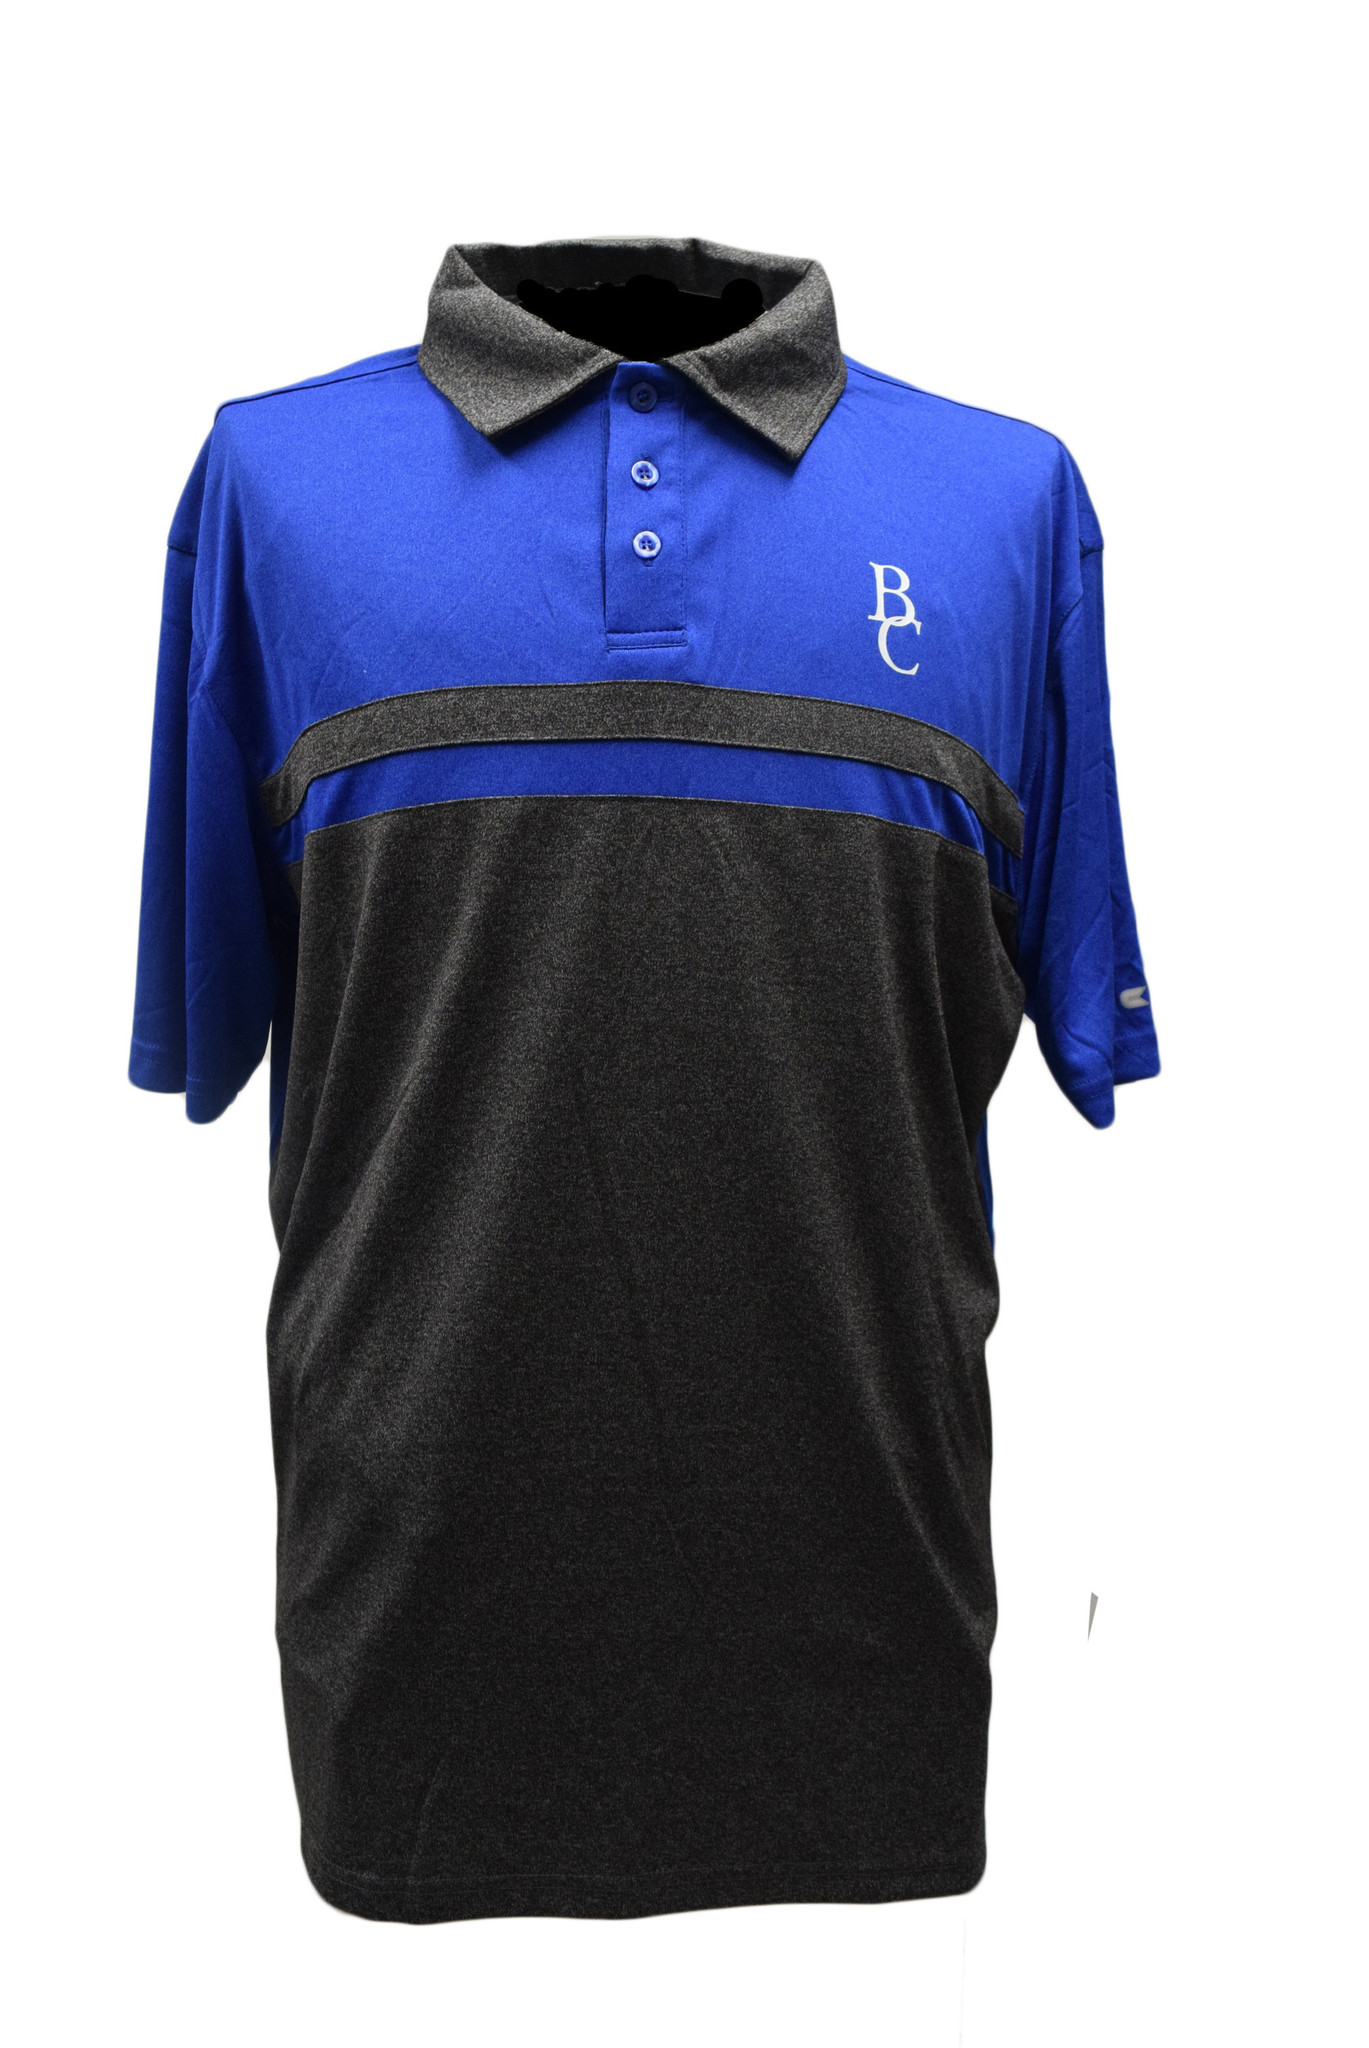 Polo,Mens,Blue and Black,BC-1